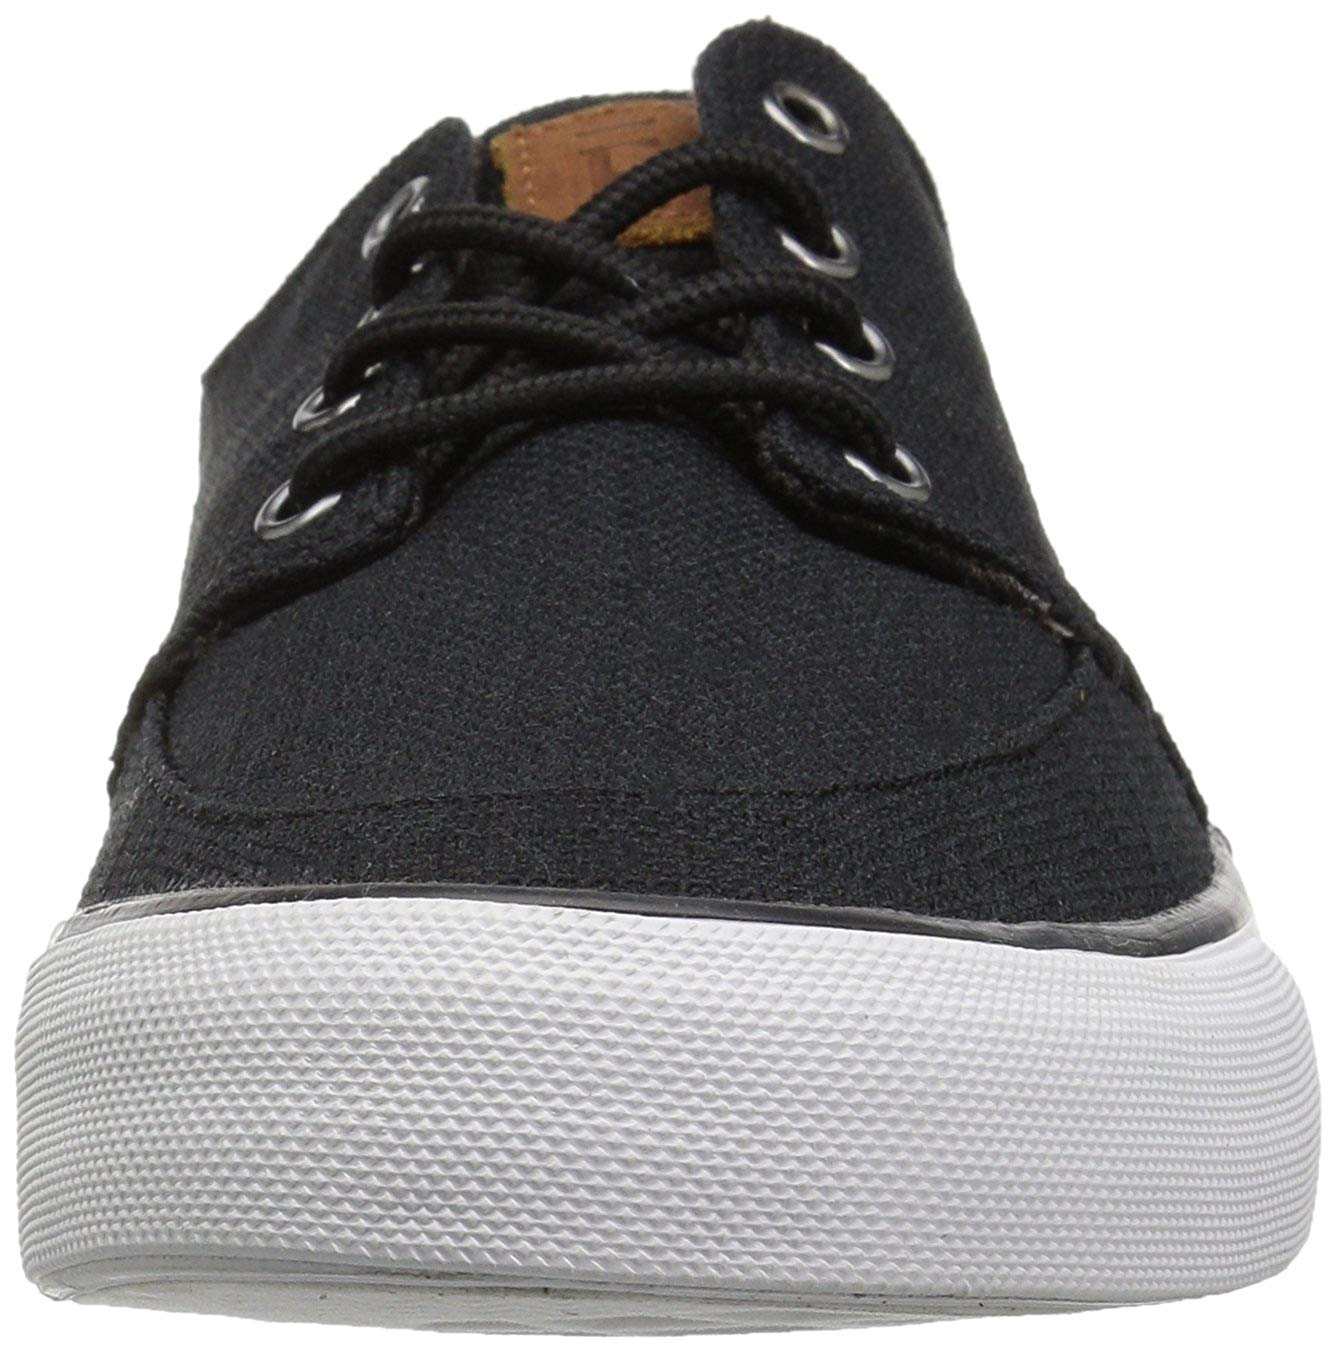 Crevo Mens Alec Low Top Lace Up Fashion Sneakers - image 1 of 2